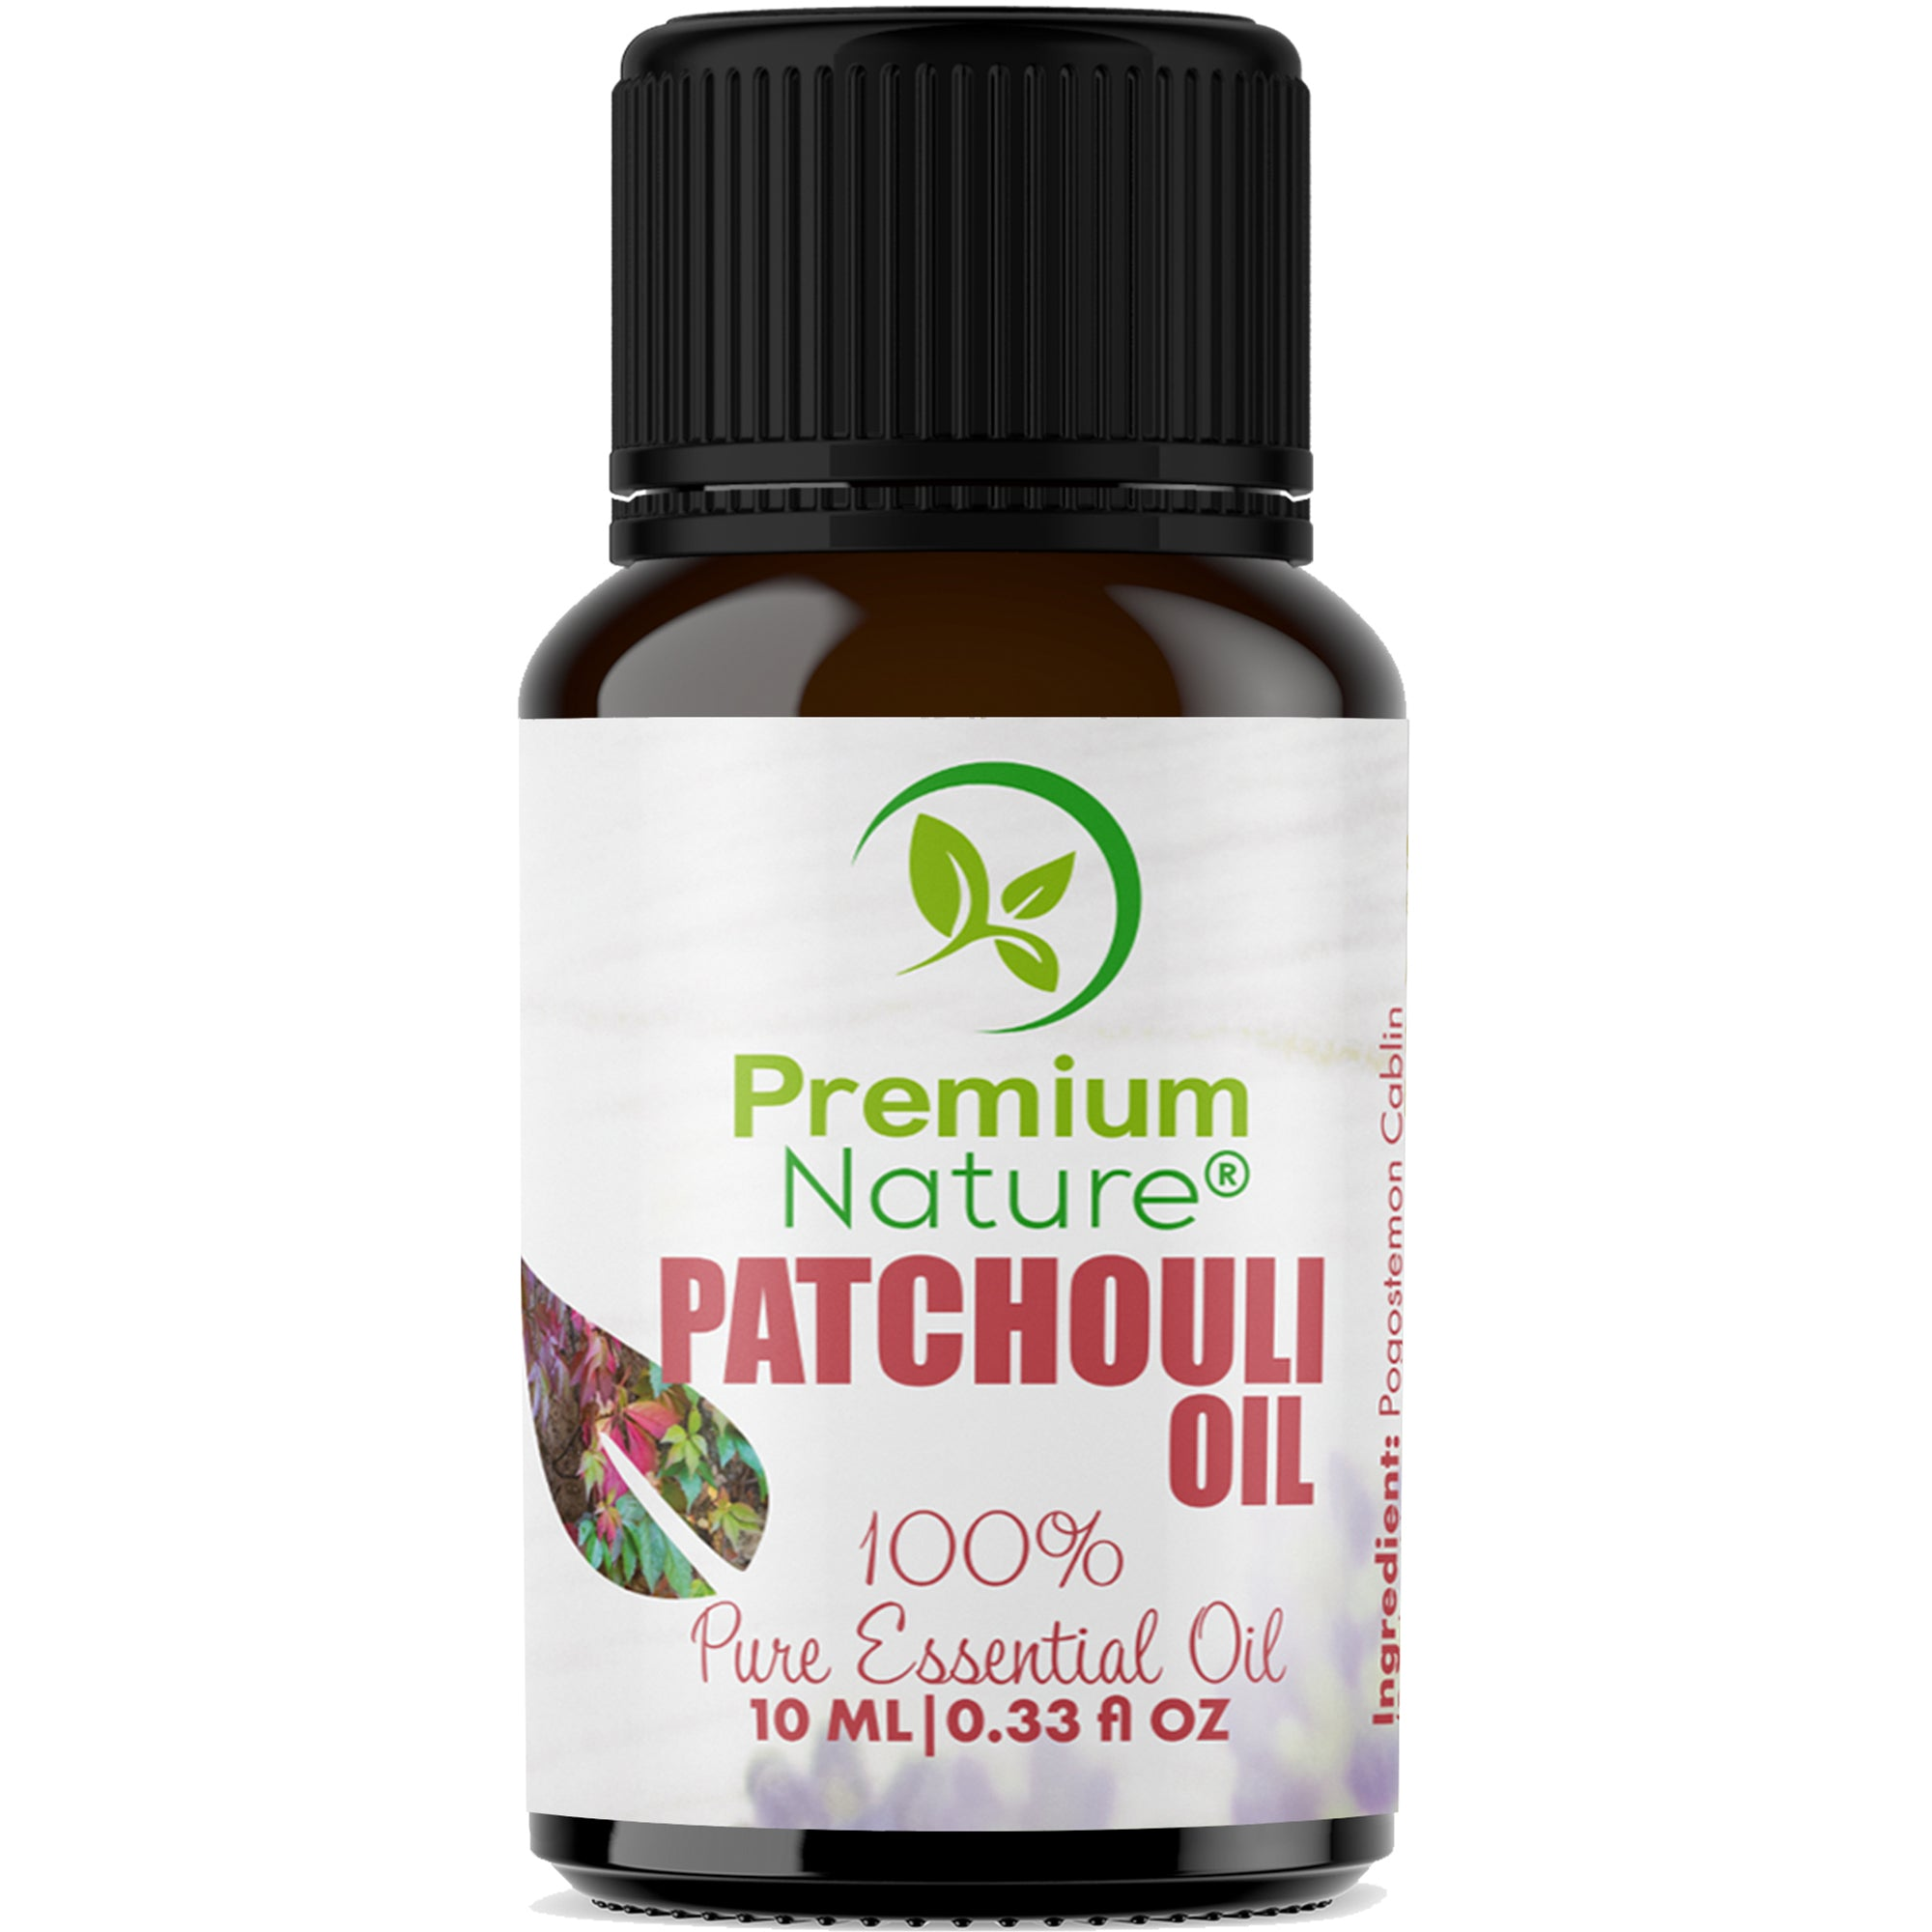 Patchouli Essential Oil by Premium Nature